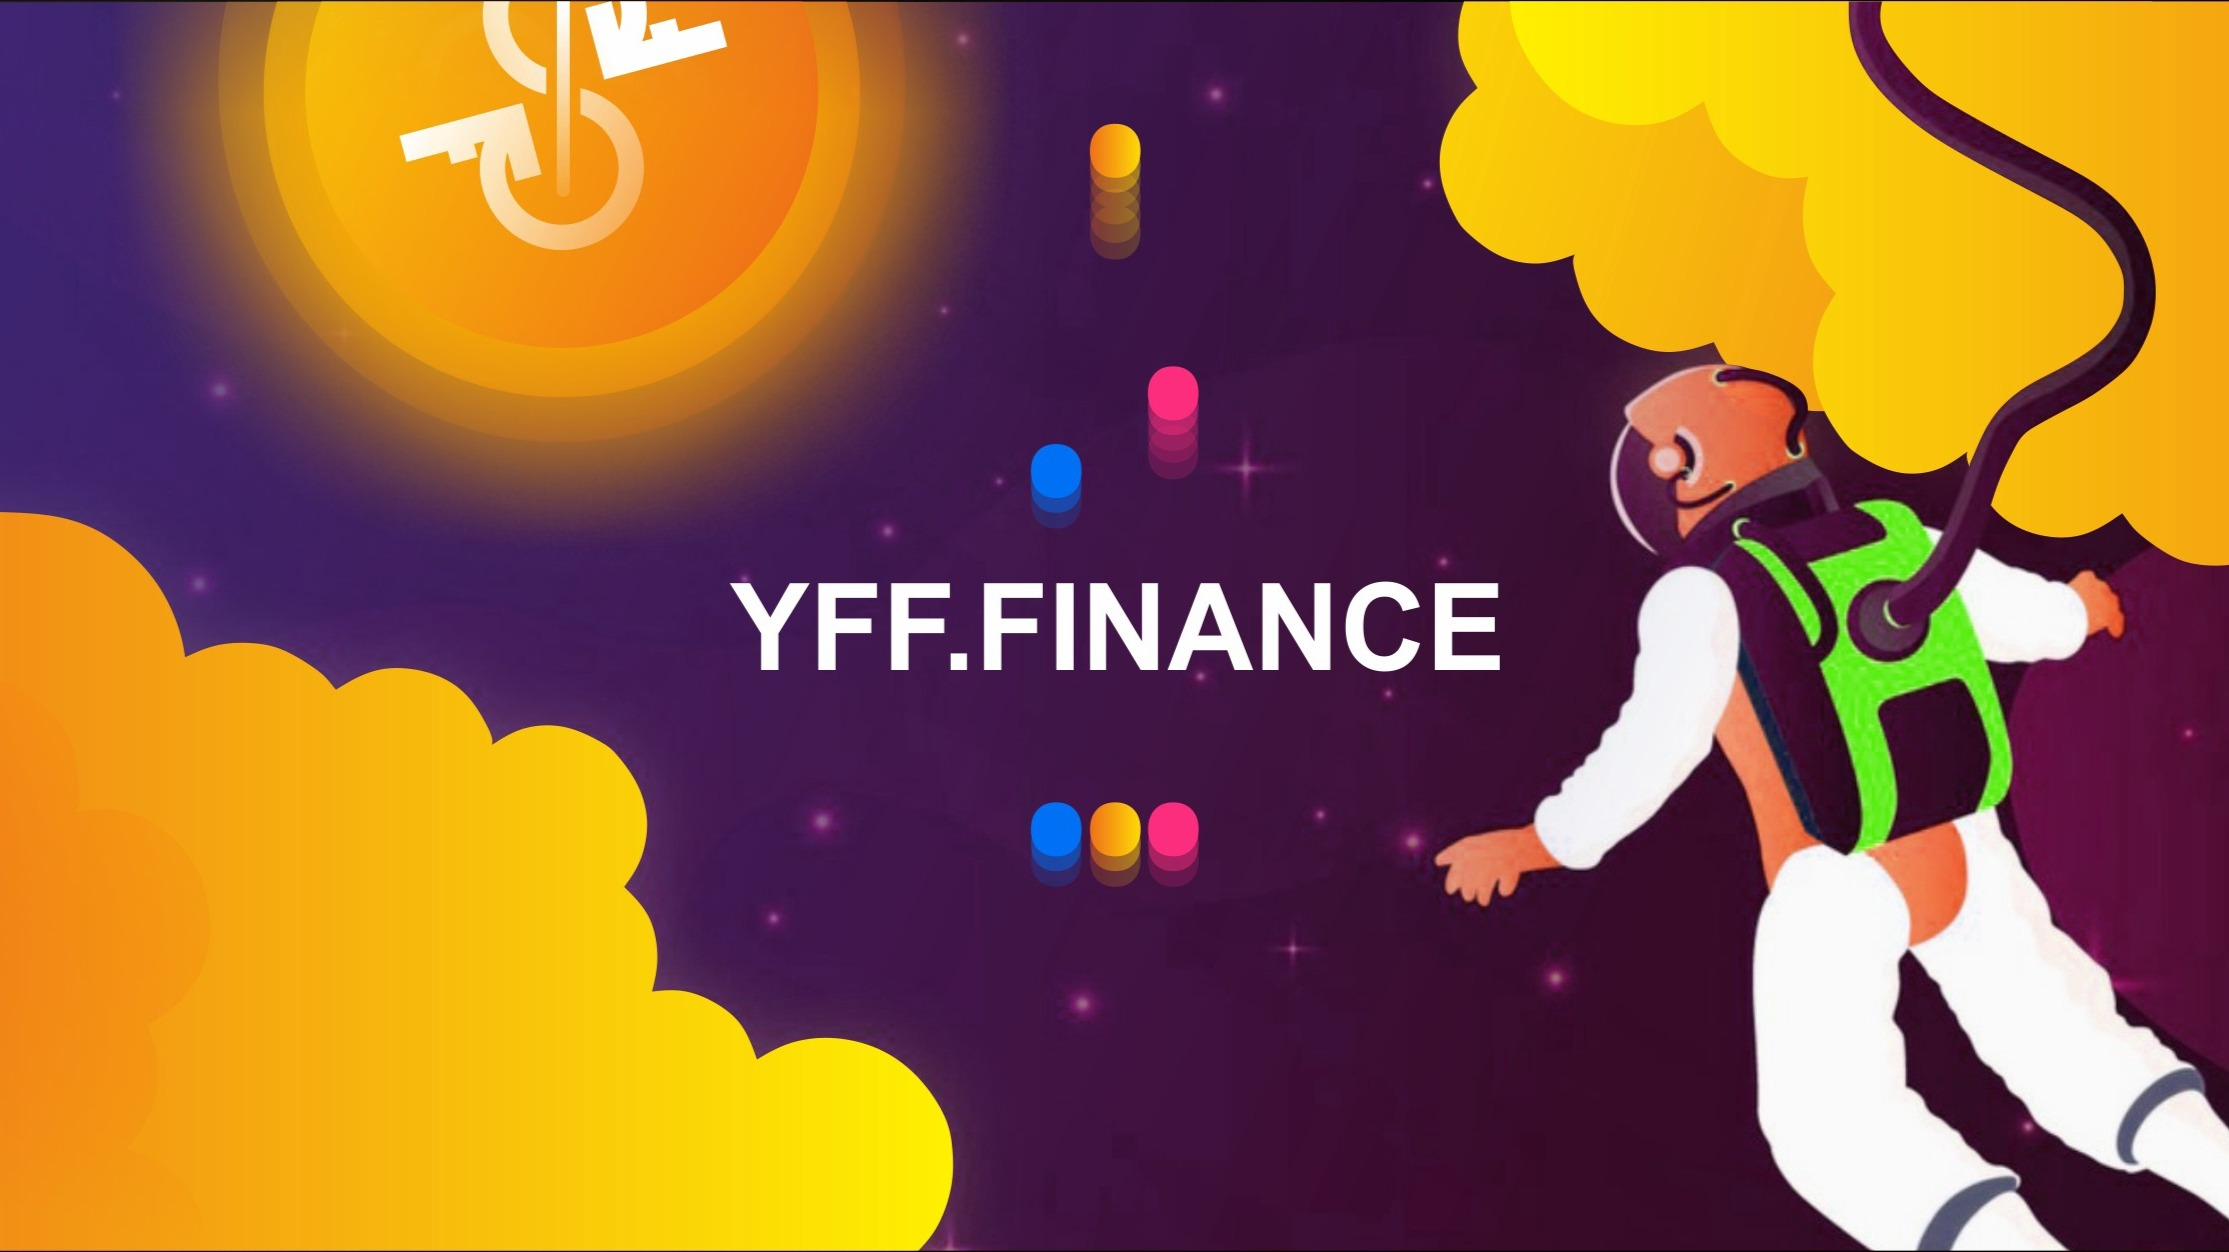 Yearn.finance's YFI governance token has found itself caught within a consolidation phase alongside Bitcoin and the rest of t